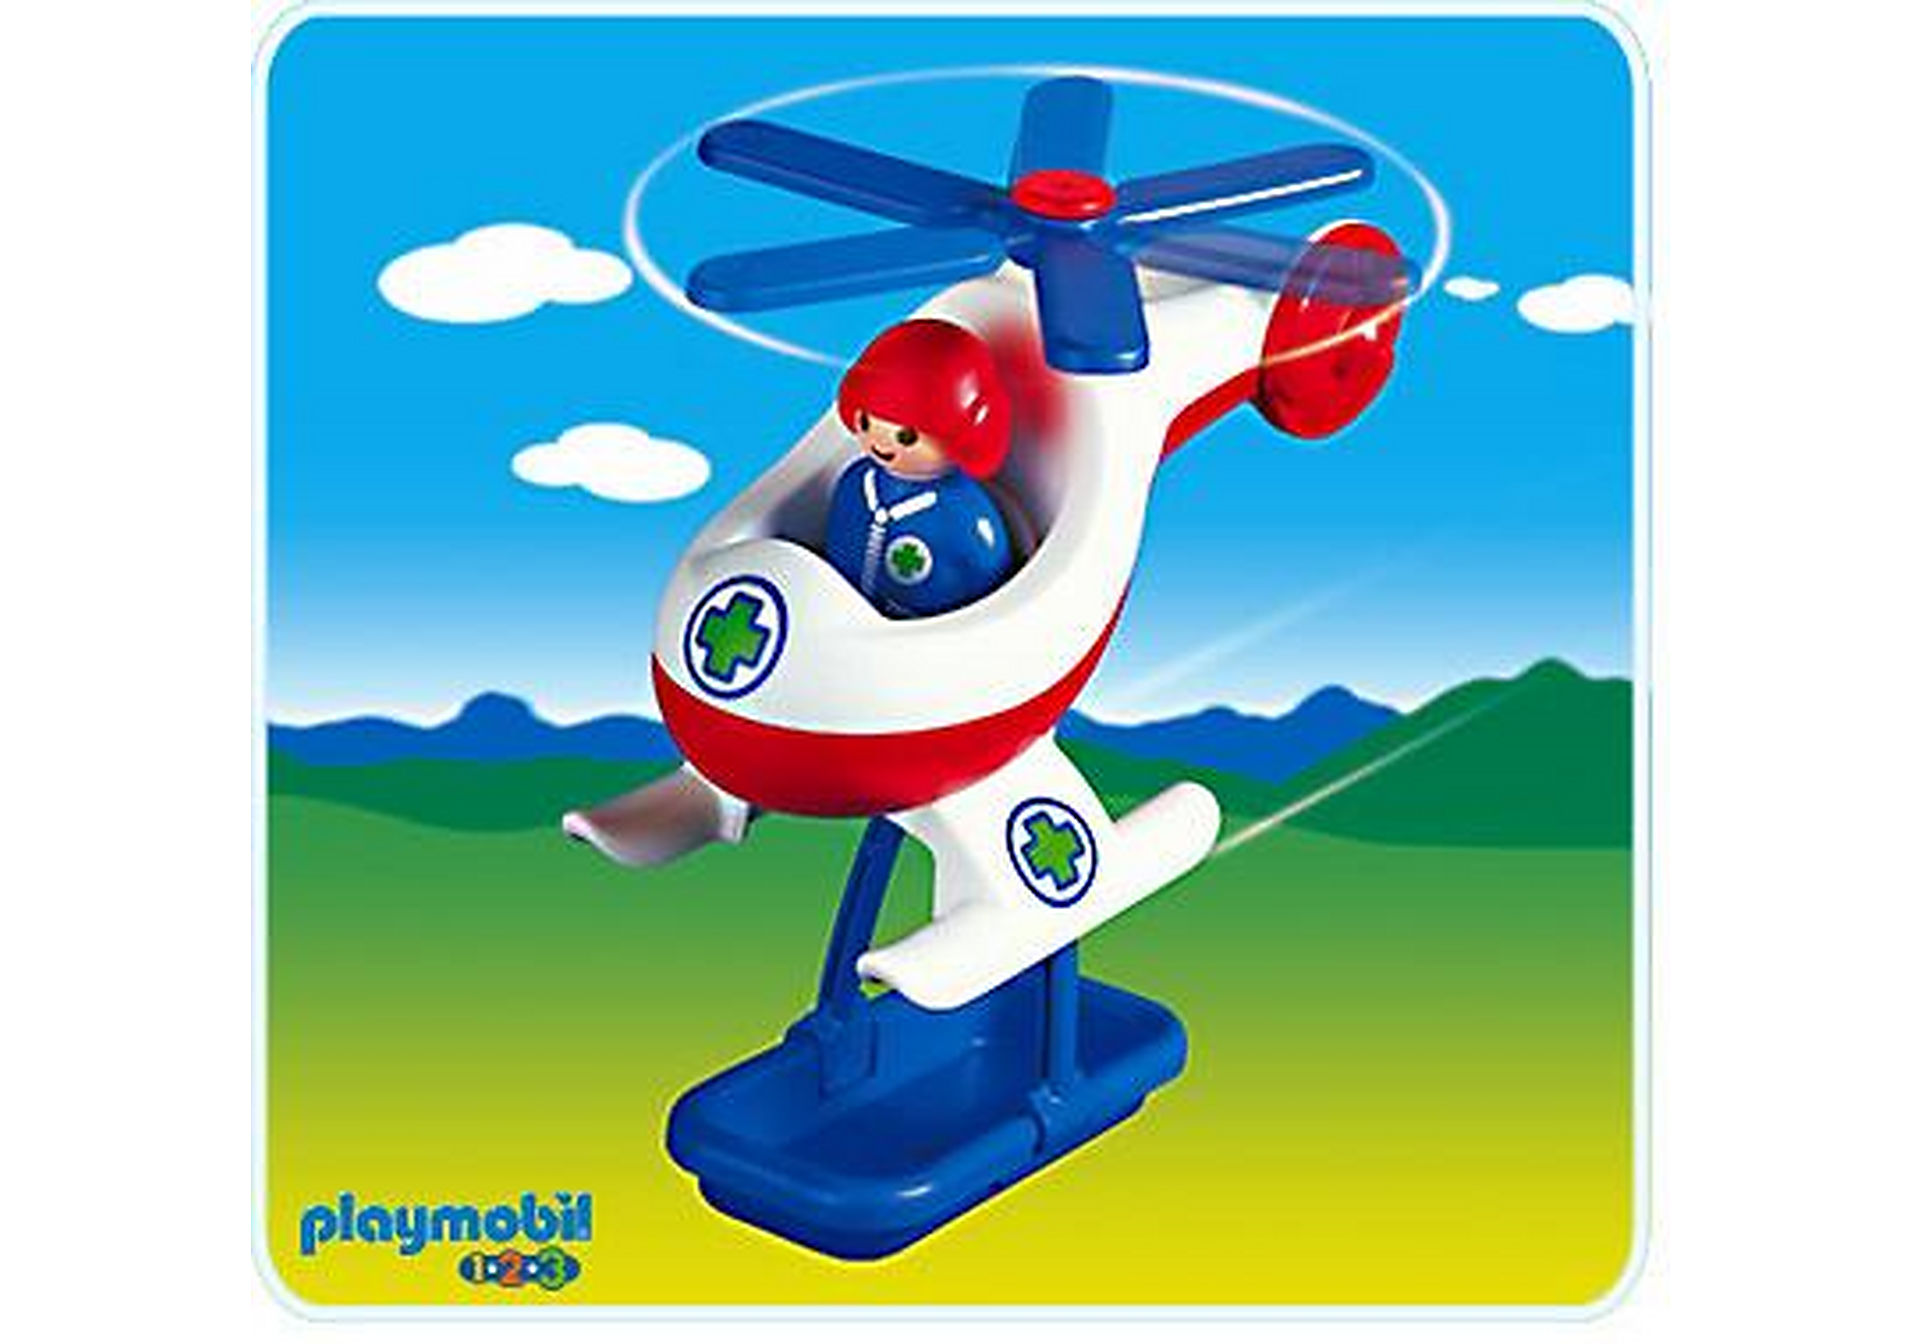 http://media.playmobil.com/i/playmobil/6738-A_product_detail/Rettungshelikopter